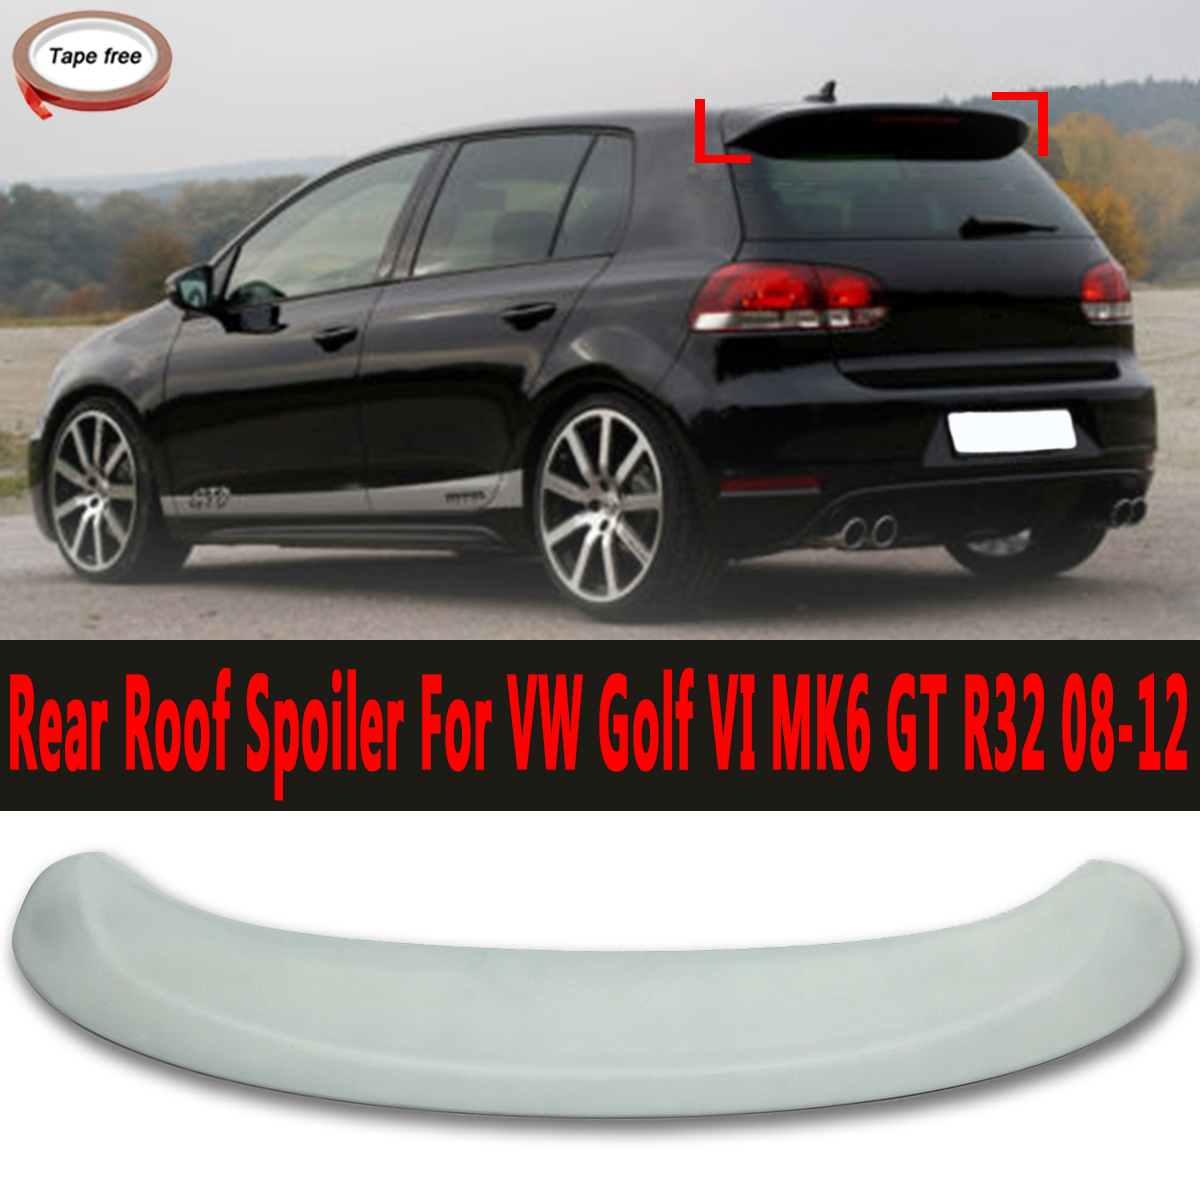 Rear Trunk Roof Spoiler Boot Lip Wing Fits For VW for Golf VI MK6 GT R32 2008-2012 hercules вп 17